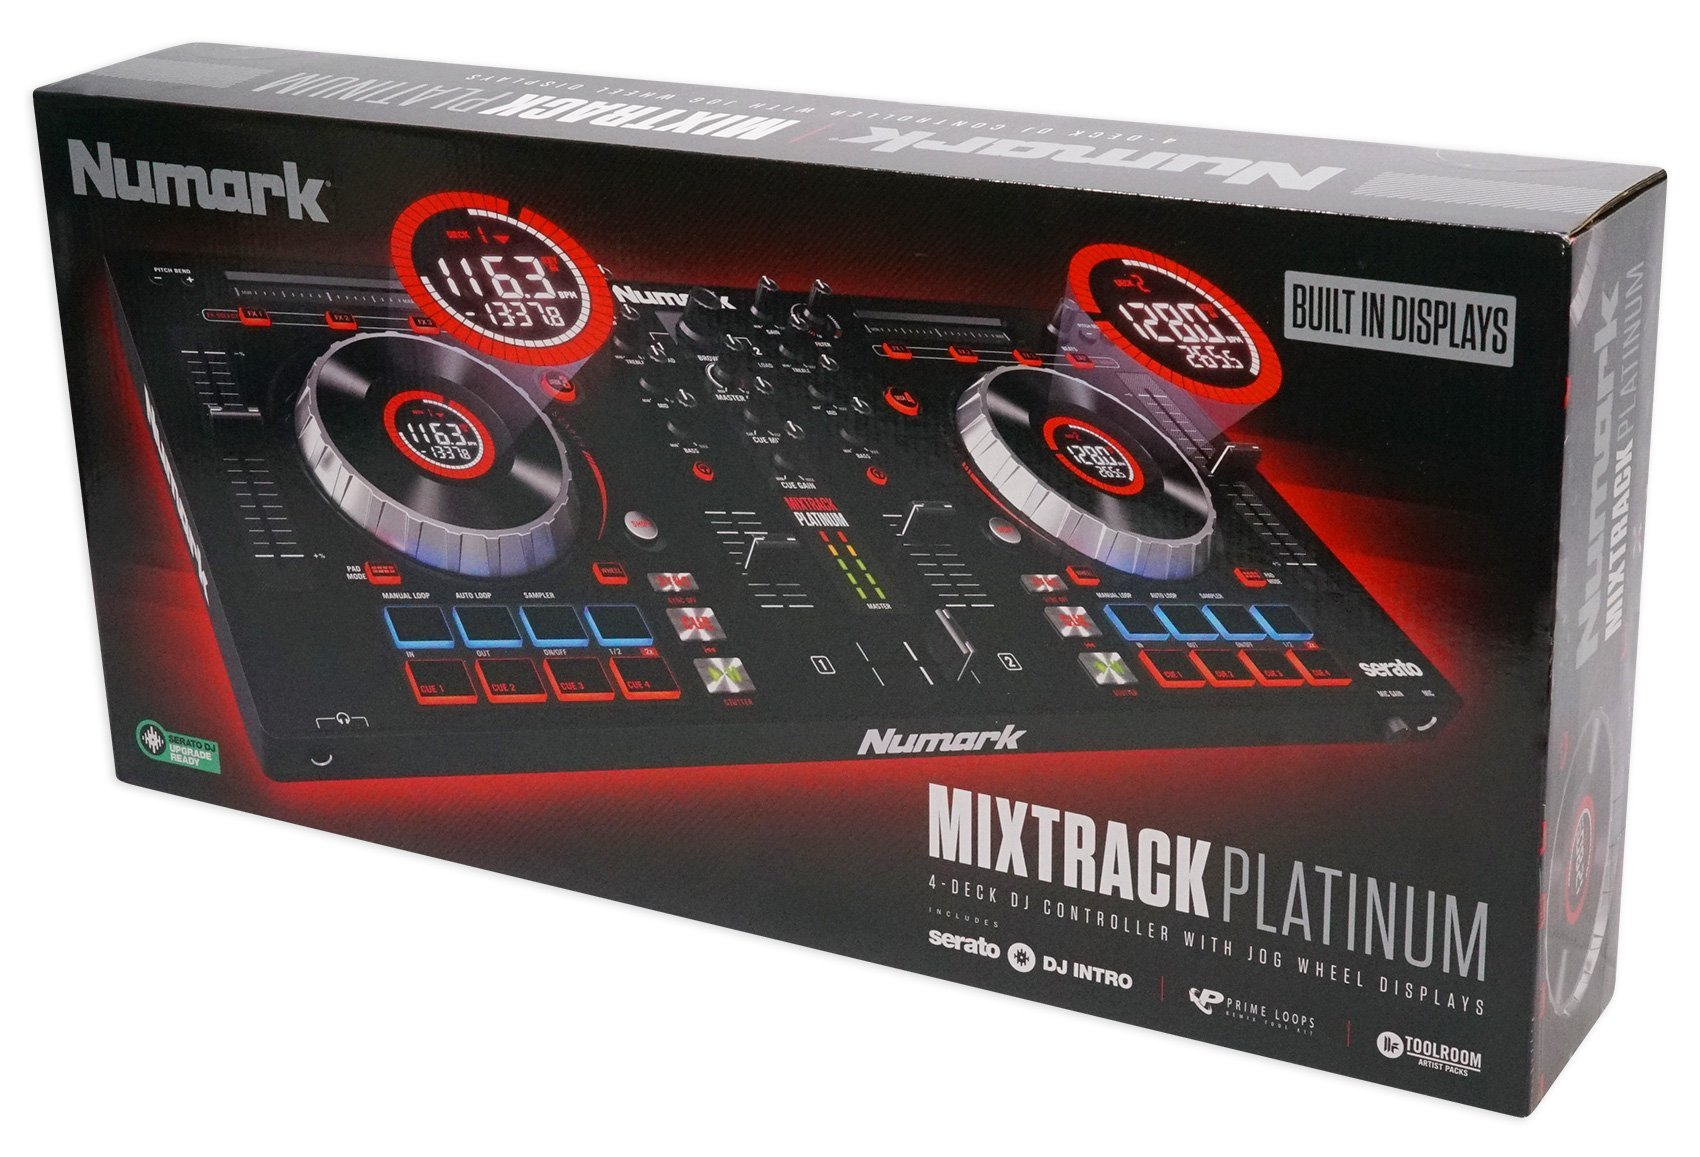 Numark Mixtrack Platinum | 4-channel DJ Controller With 4-deck Layering and Hi-Res Display for Serato DJ by Numark (Image #9)